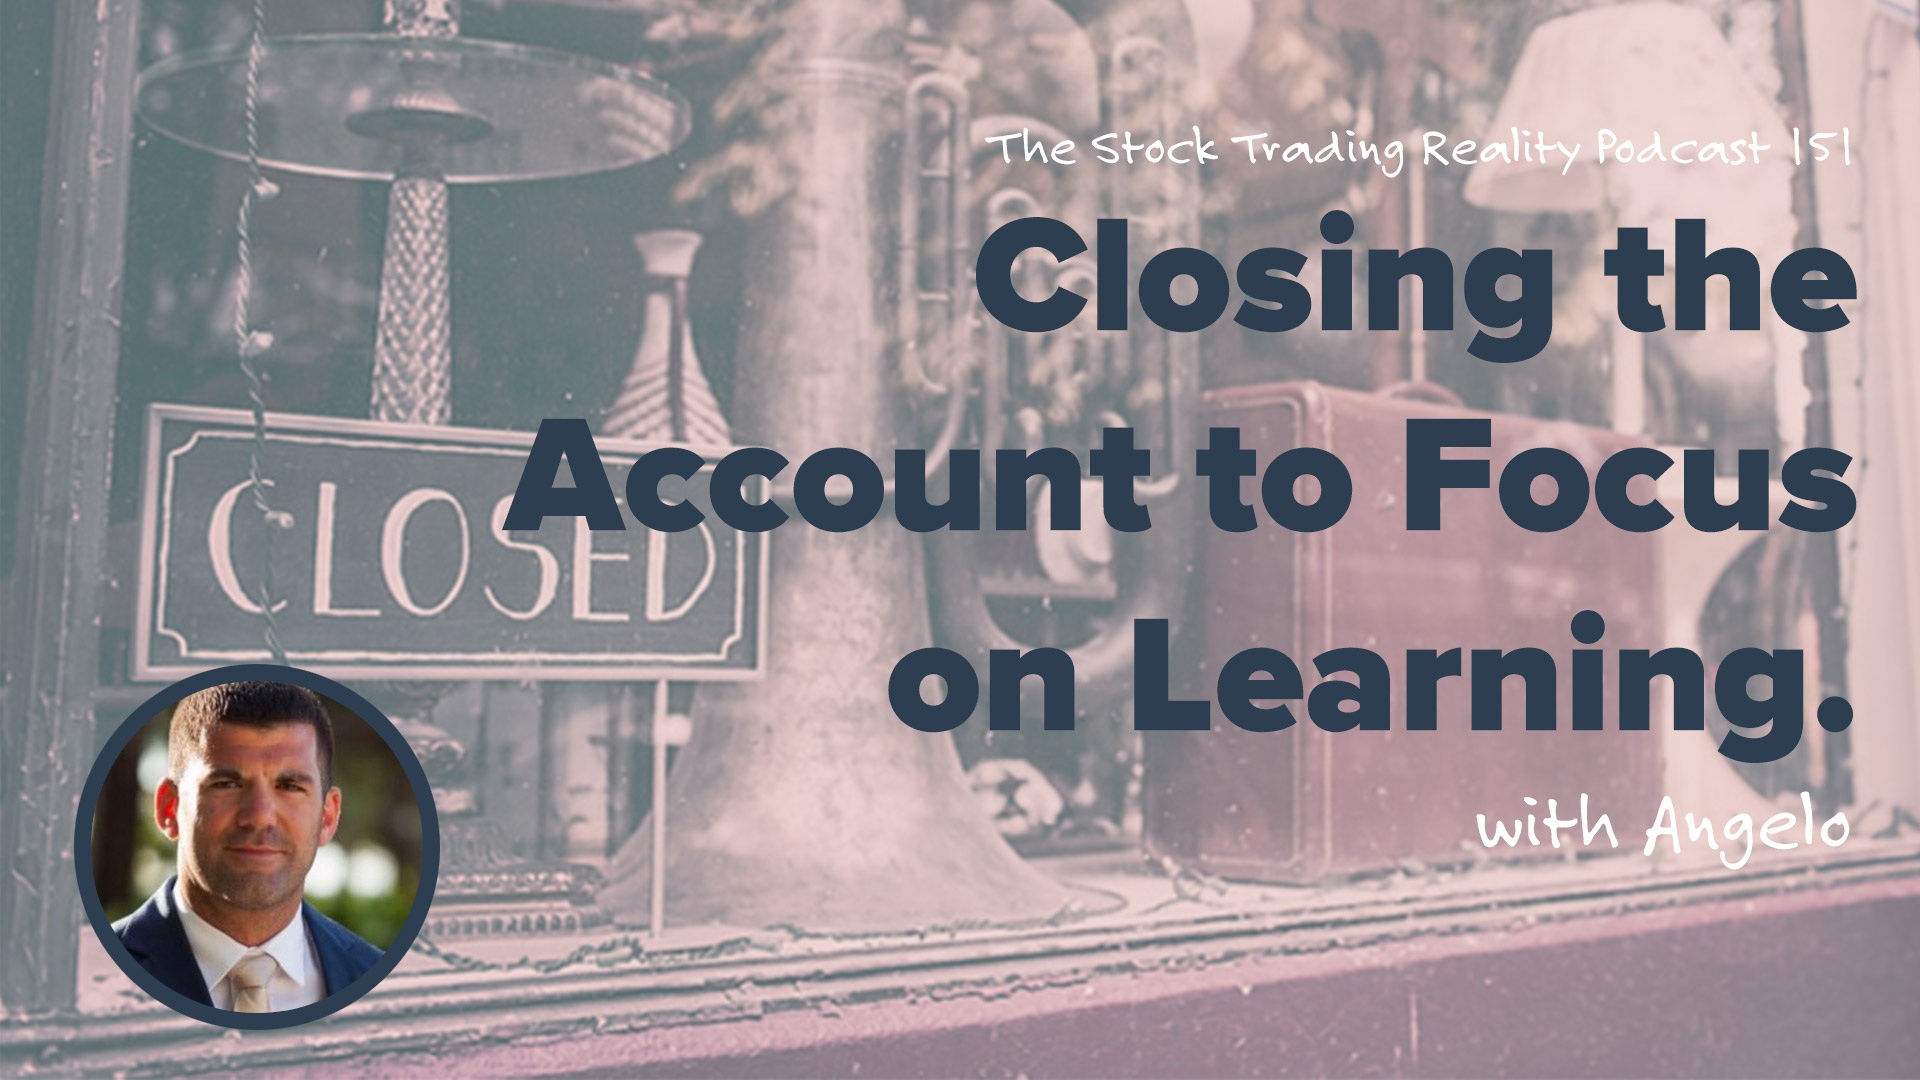 STR 151: Closing the Account to Focus on Learning.